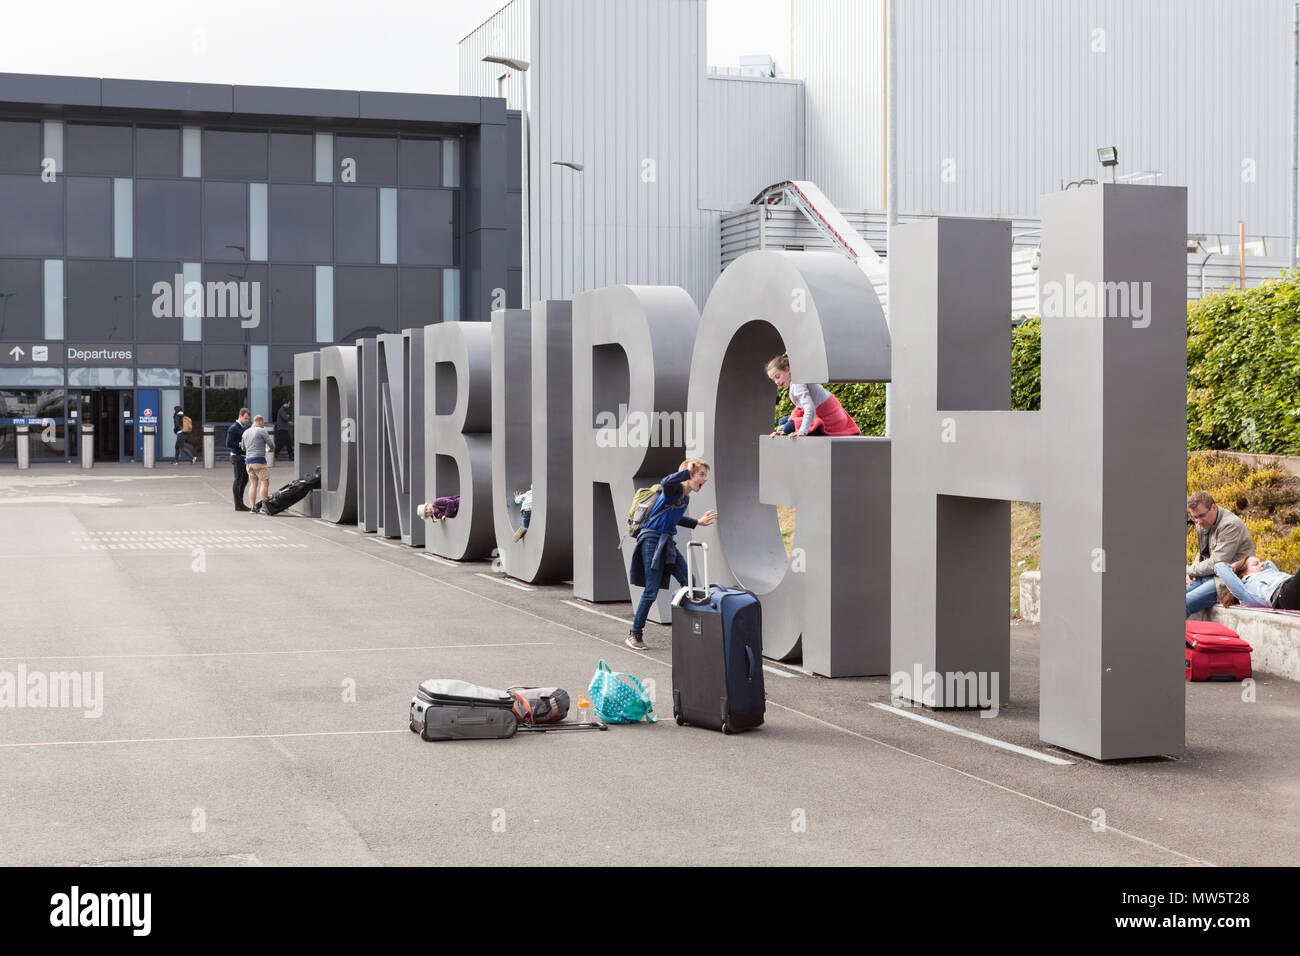 Large Edinburgh lettering sign outside Edinburgh airport, Scotland, UK Stock Photo